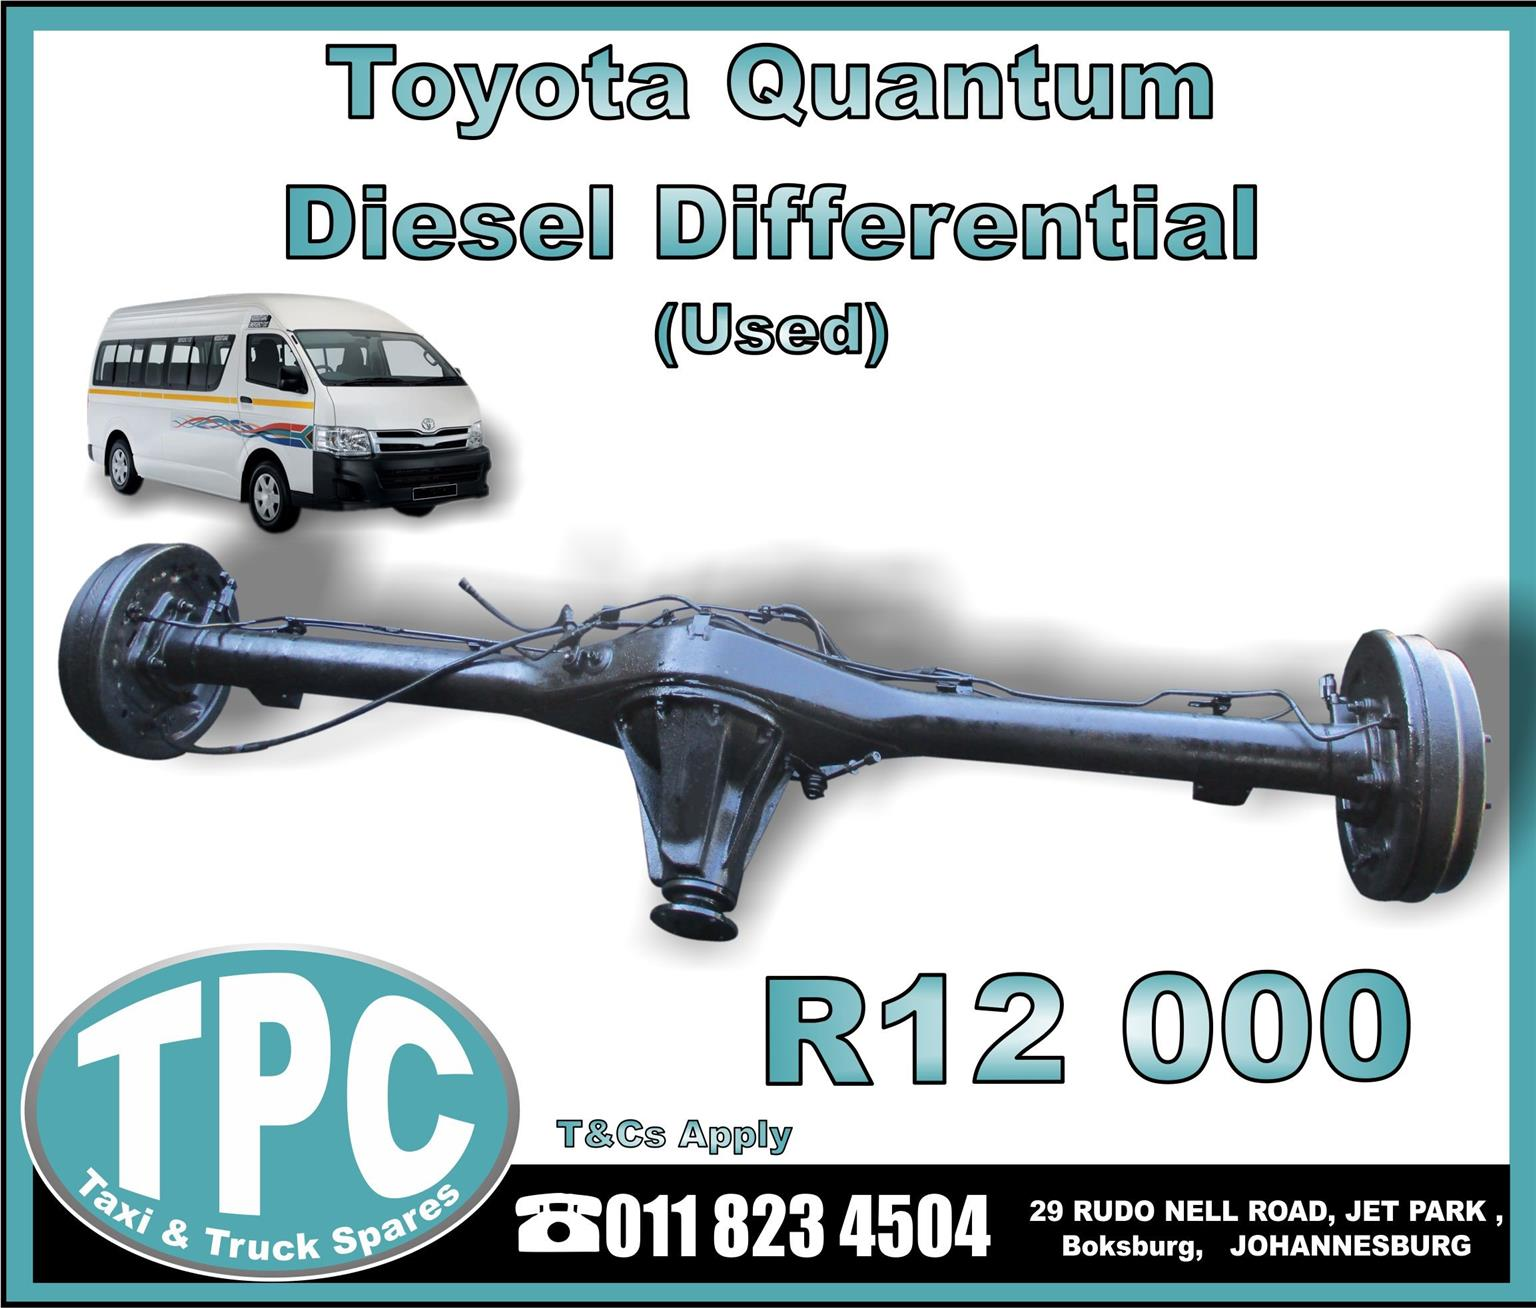 Toyota Quantum Diesel Differential - Used - New And Used Quality Replacement Taxi Spare Parts - TPC